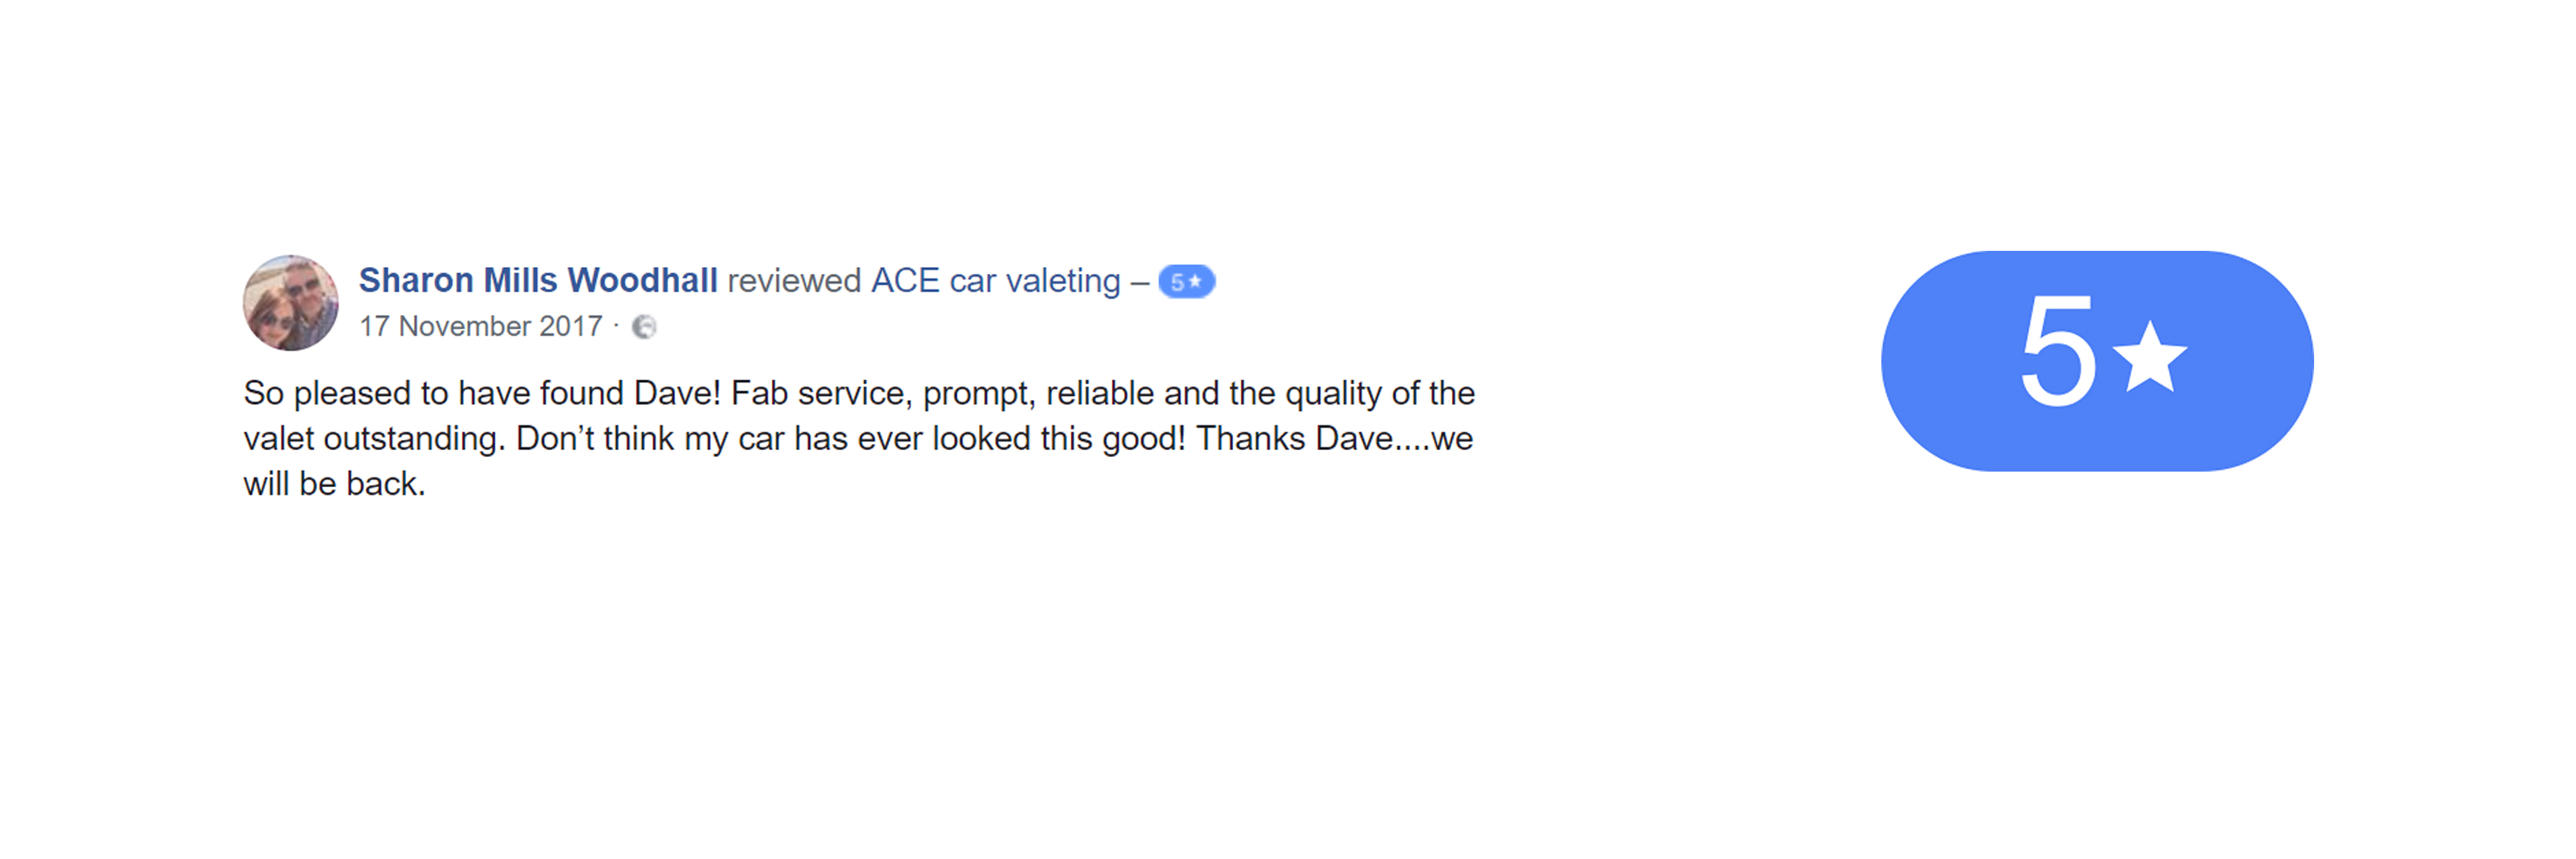 ace review_4